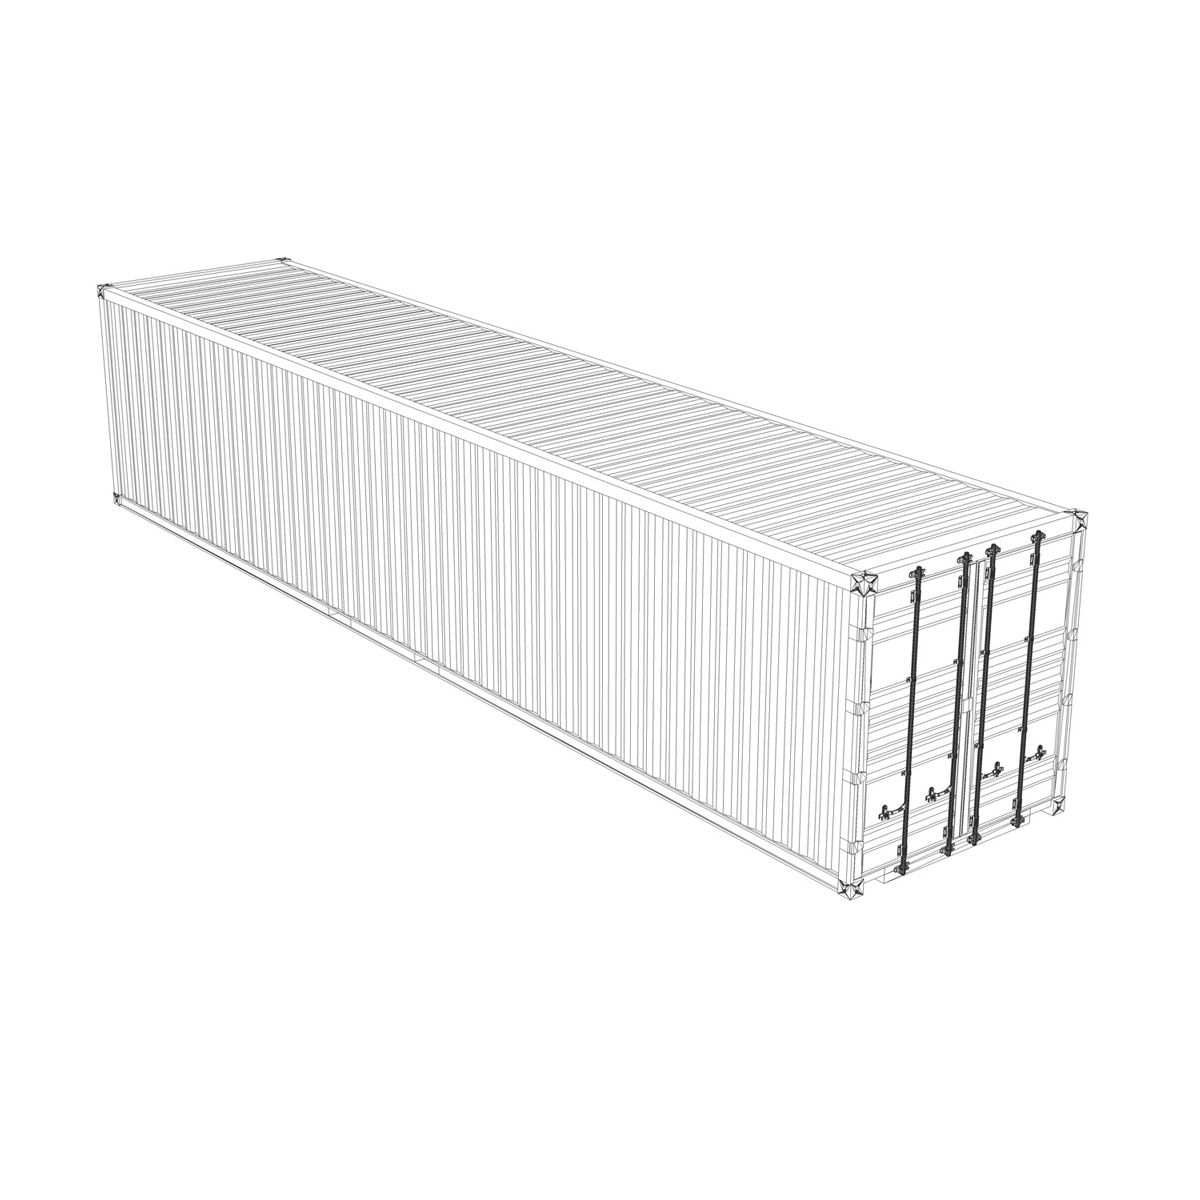 40ft shipping container – mol 3d model 3ds fbx lwo lw lws obj c4d 265142